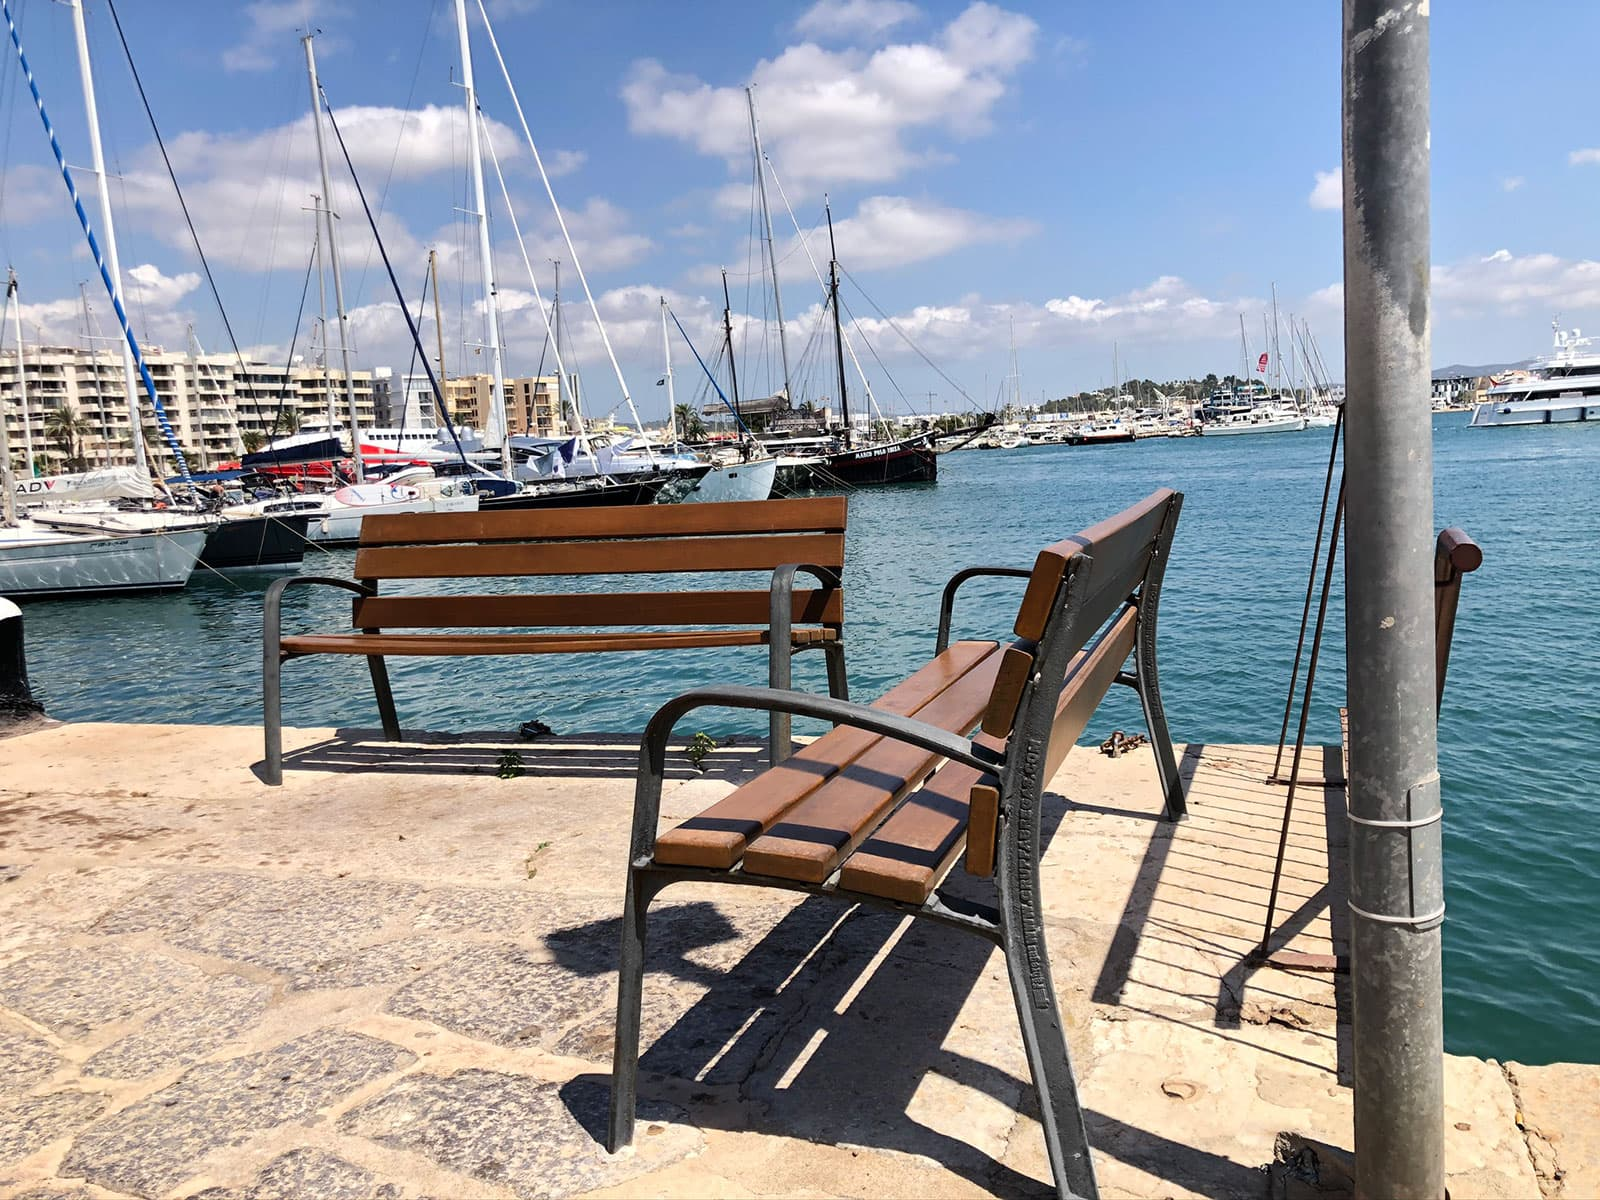 Wooden benches in the port of Ibiza - 2021